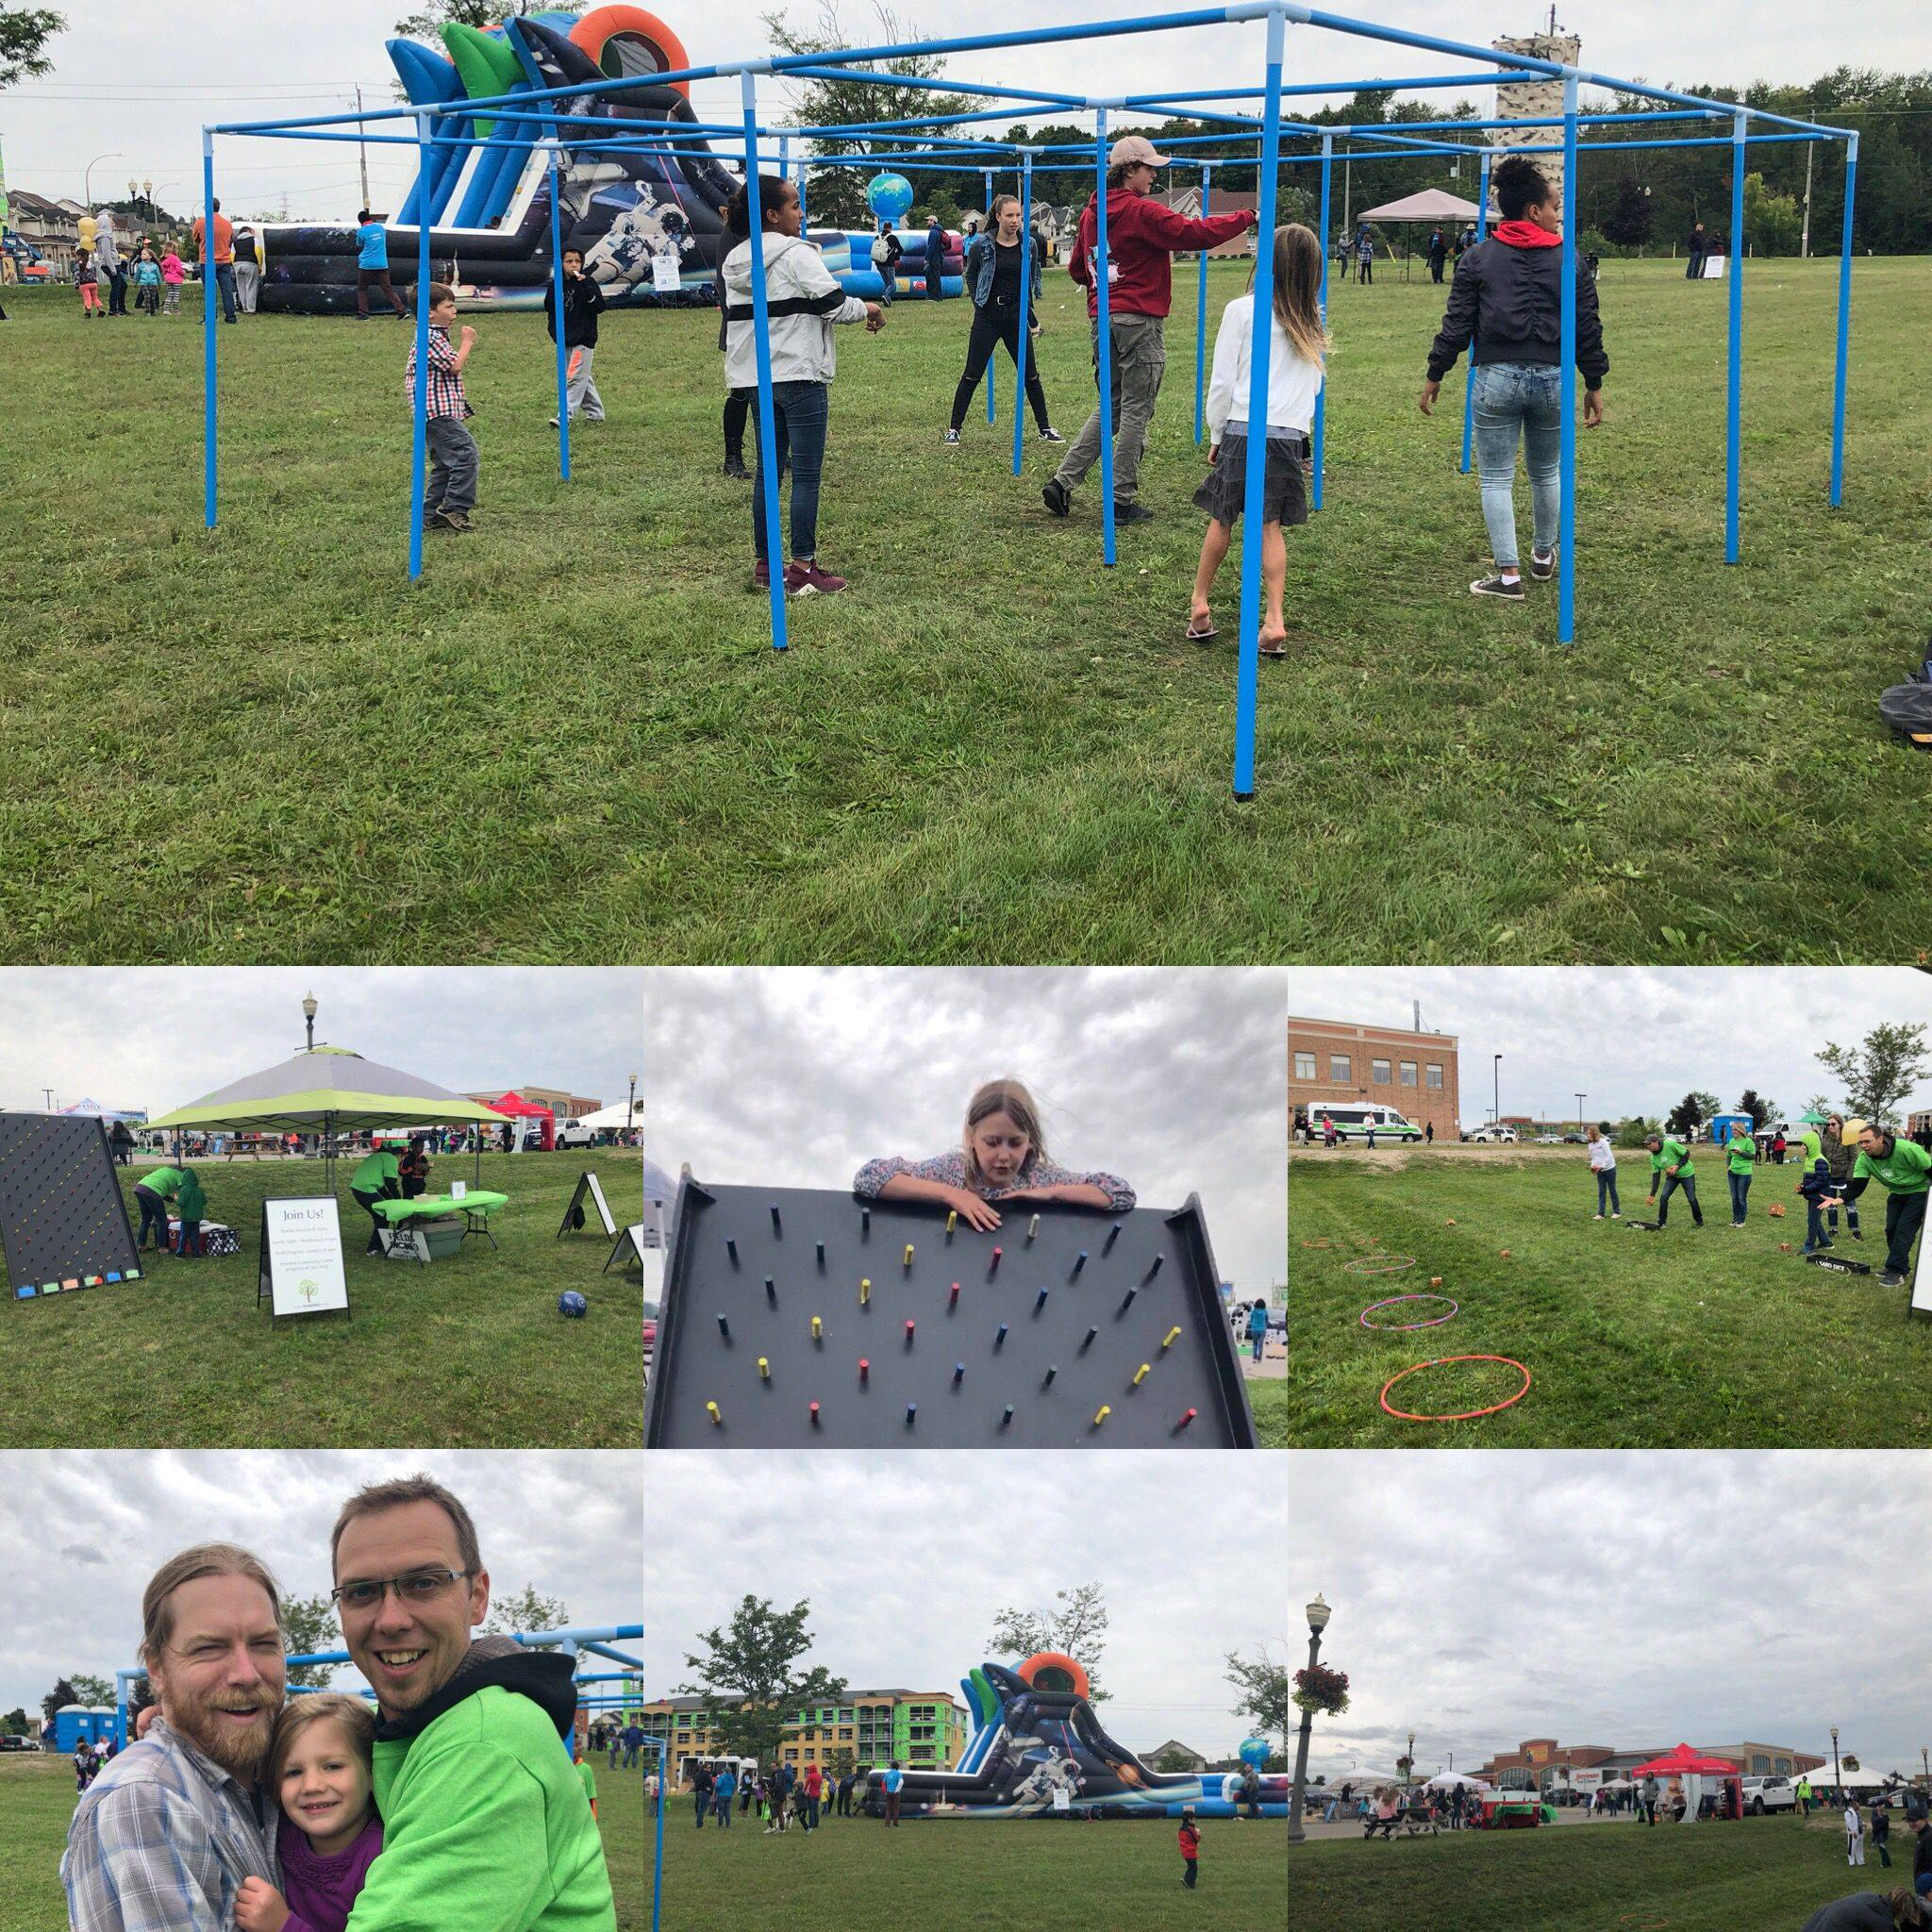 Our Freedom Team at the Williamsburg Community Festival this past Sunday. Way to go, everyone!